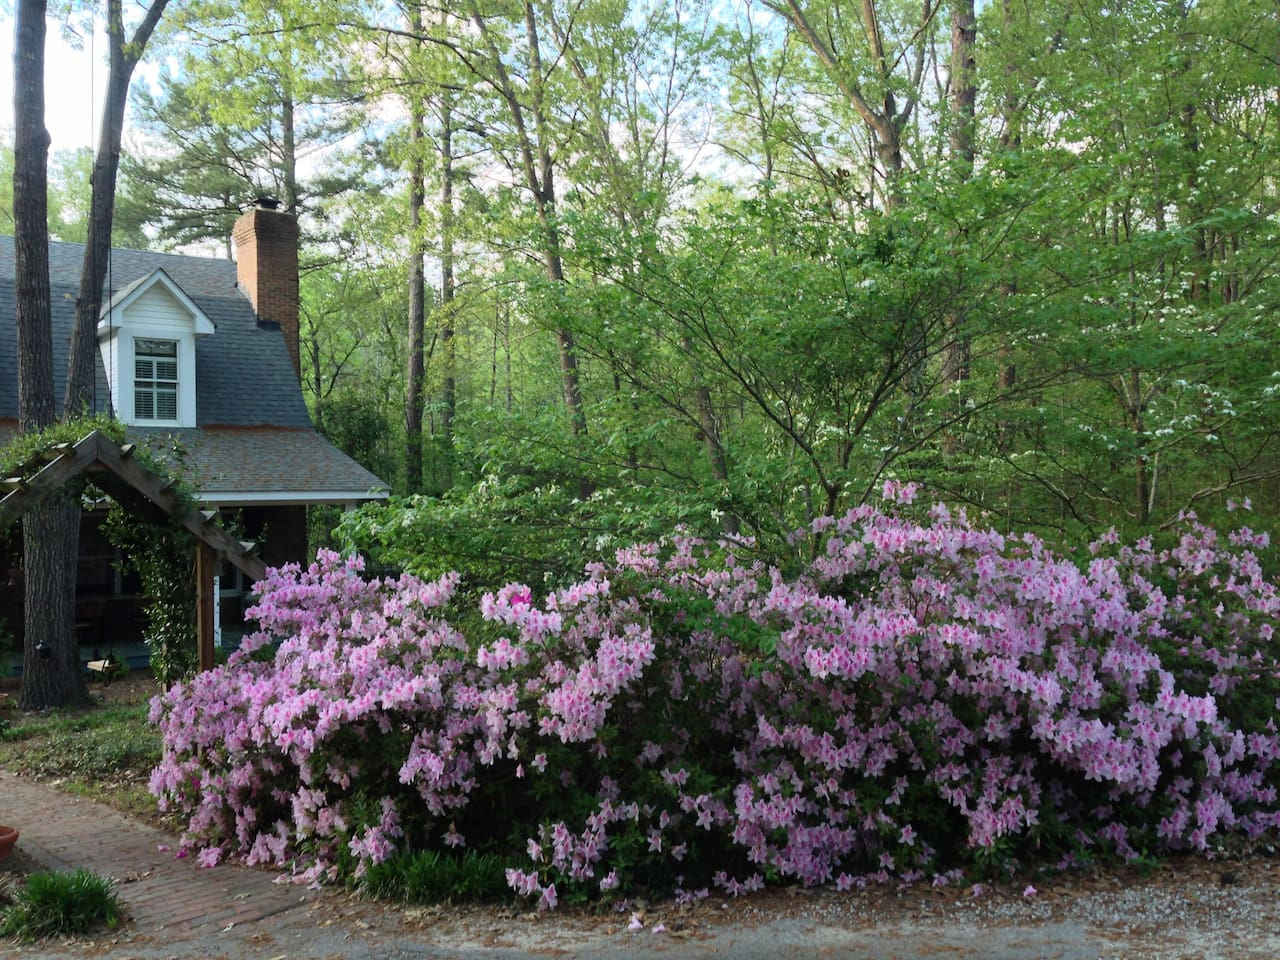 Azaleas blooming in the Spring.